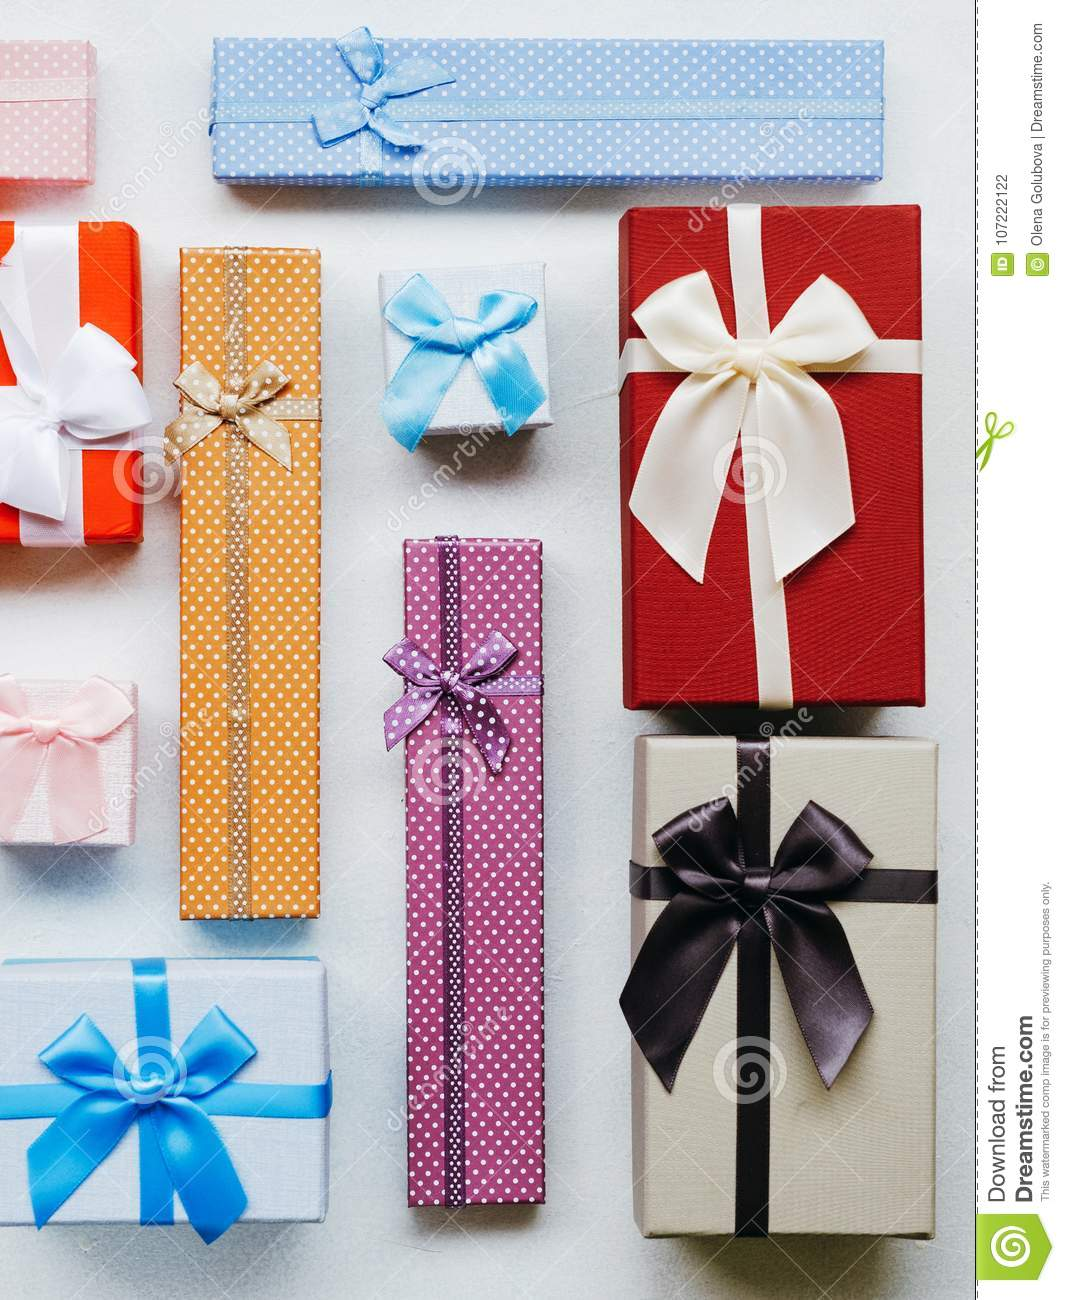 Present Wrapping Craft Creative Idea Boxes Design Stock Photo Image Of Decoration White 107222122